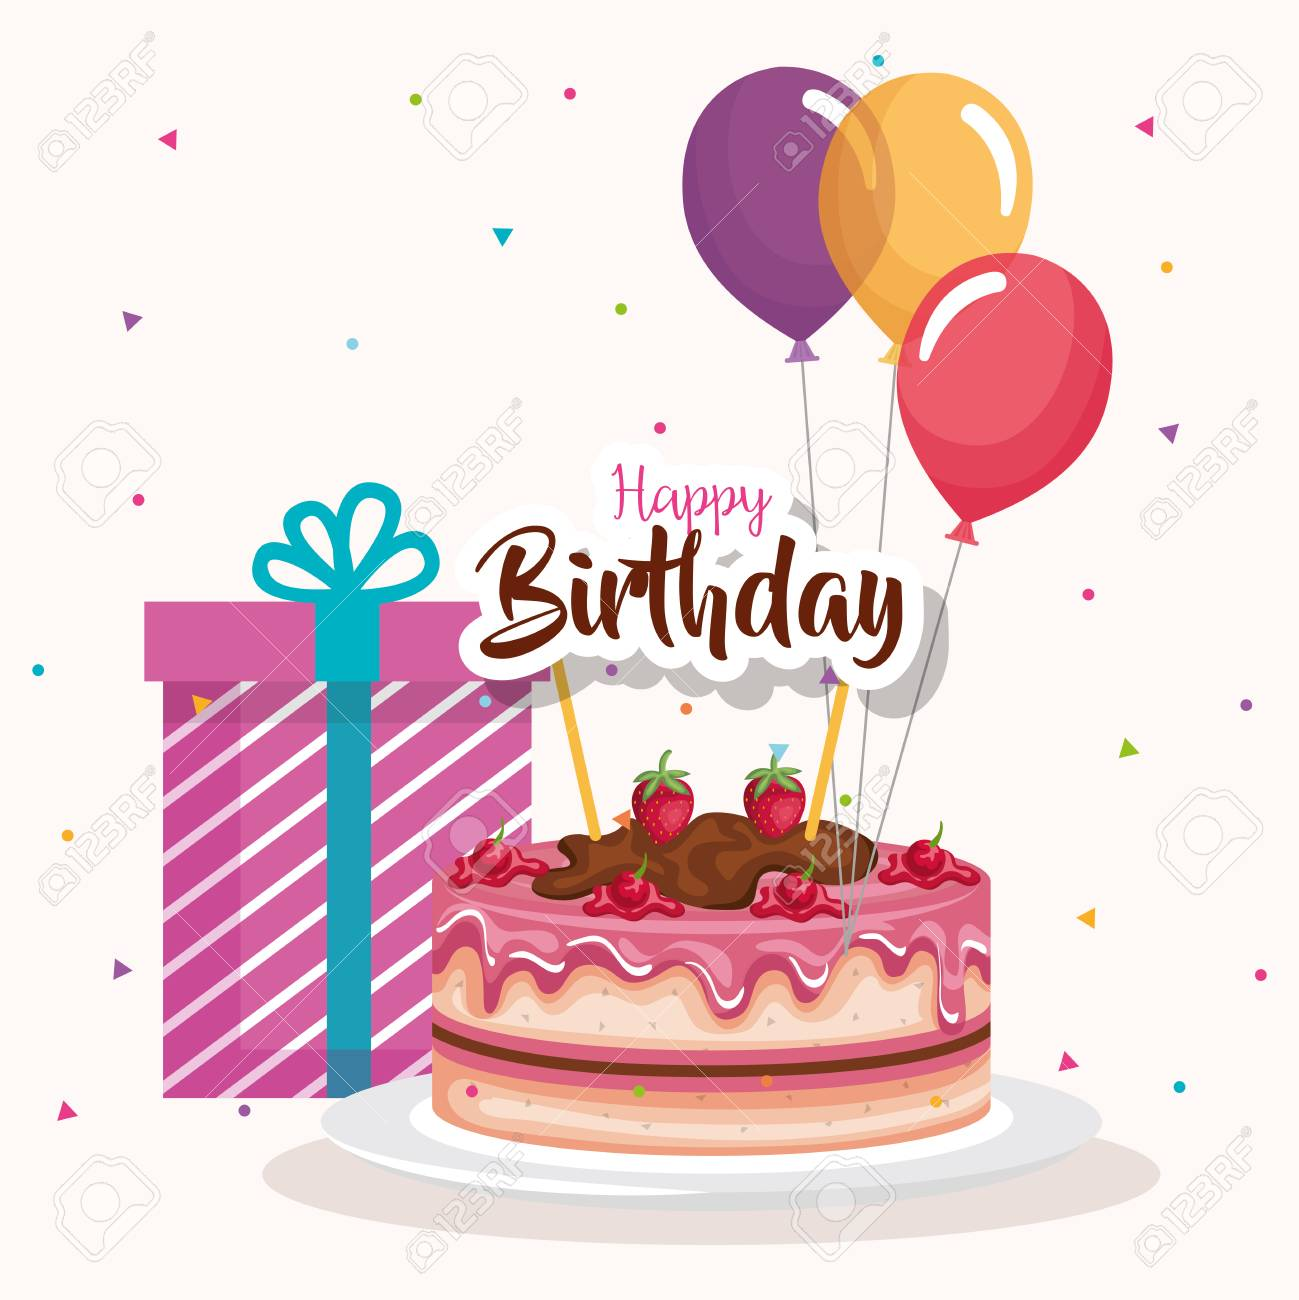 Happy Birthday Cake With Balloons Air Celebration Card Vector Illustration Design Stock